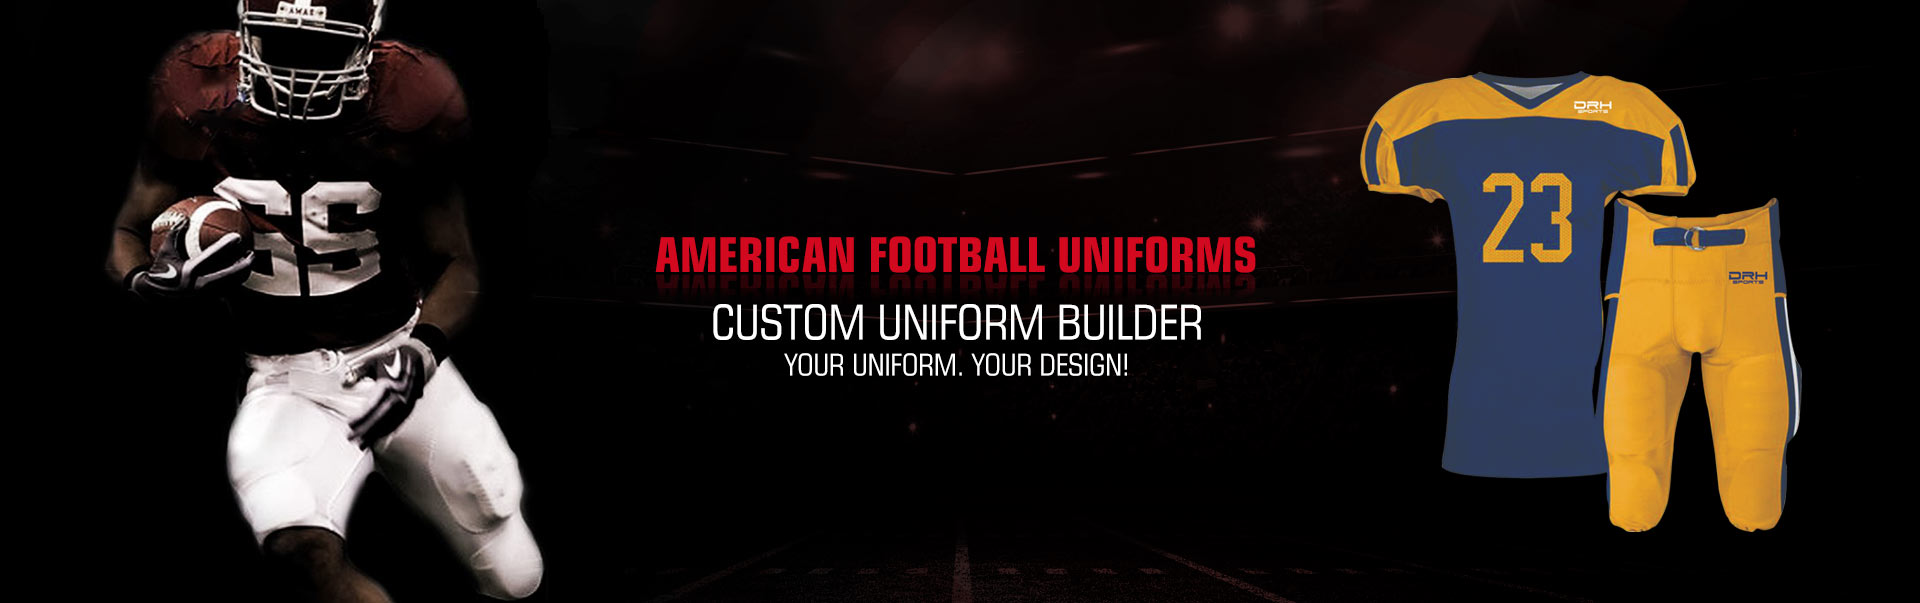 American Football Uniform Wholesaler, Suppliers in Anaheim